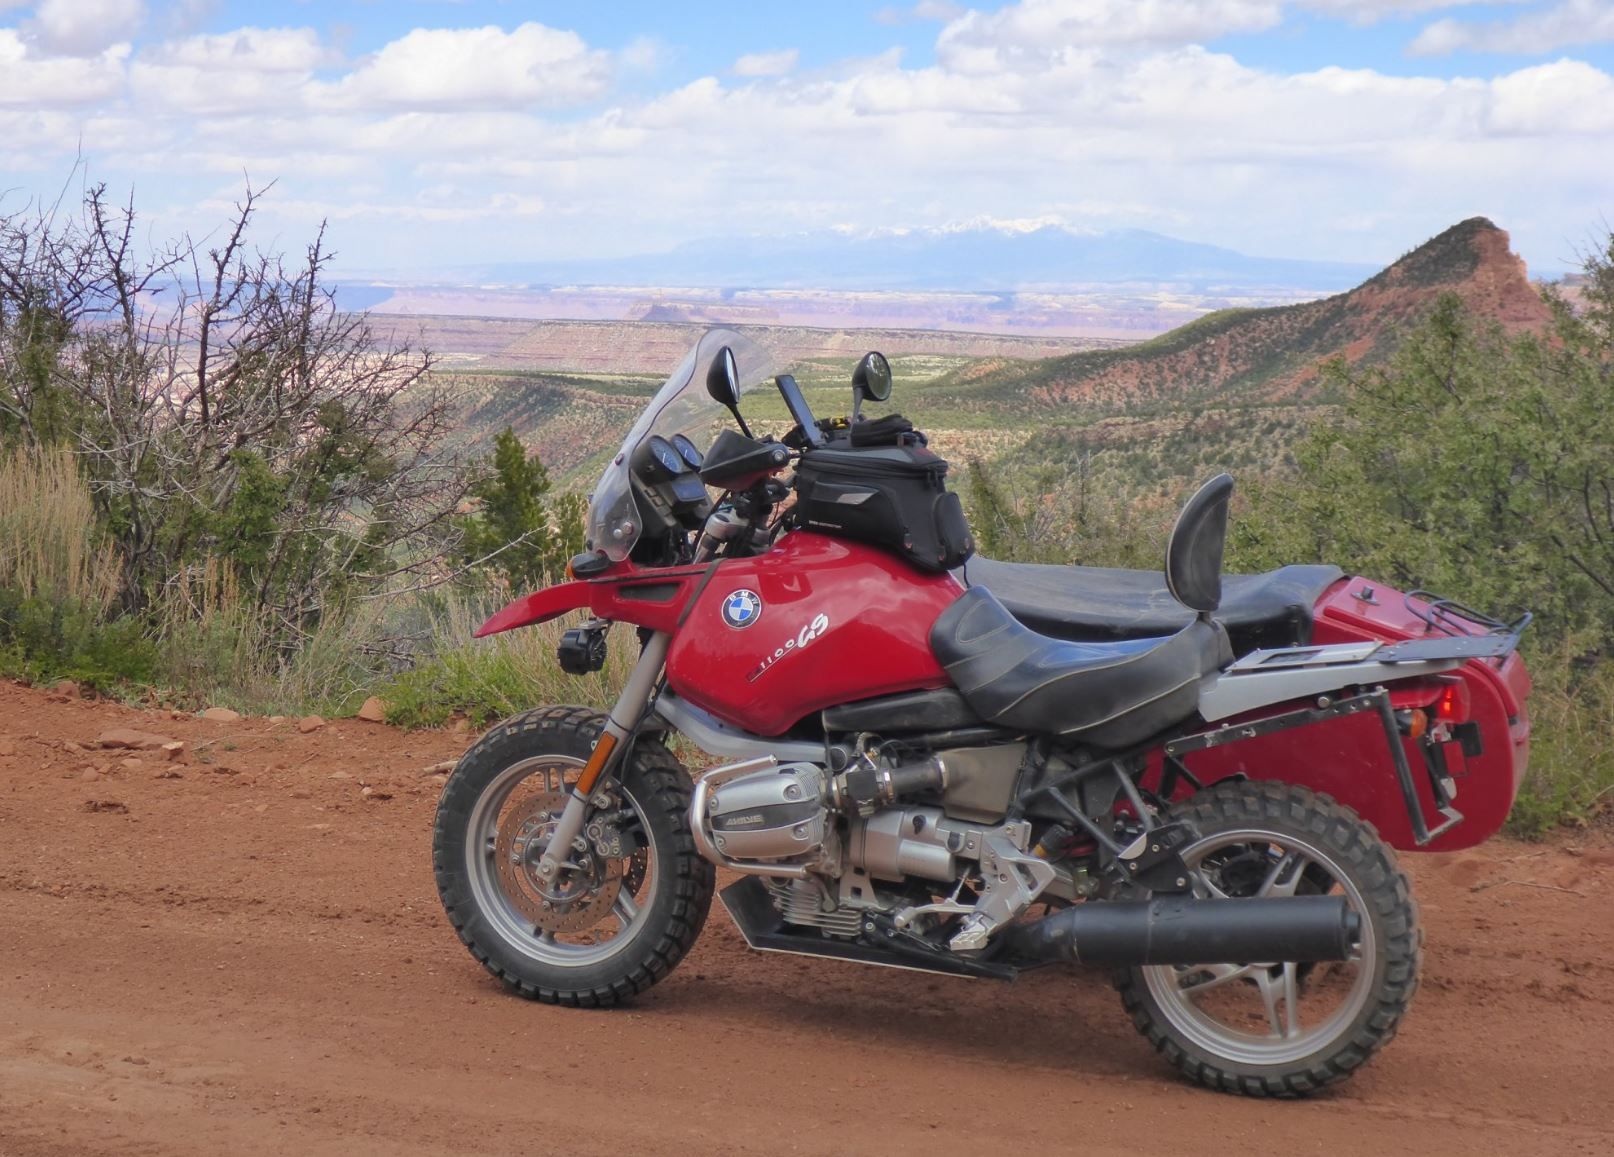 Dirt Hack – 1996 BMW R1100GS with DMC 72D Sidecar – Bike-urious